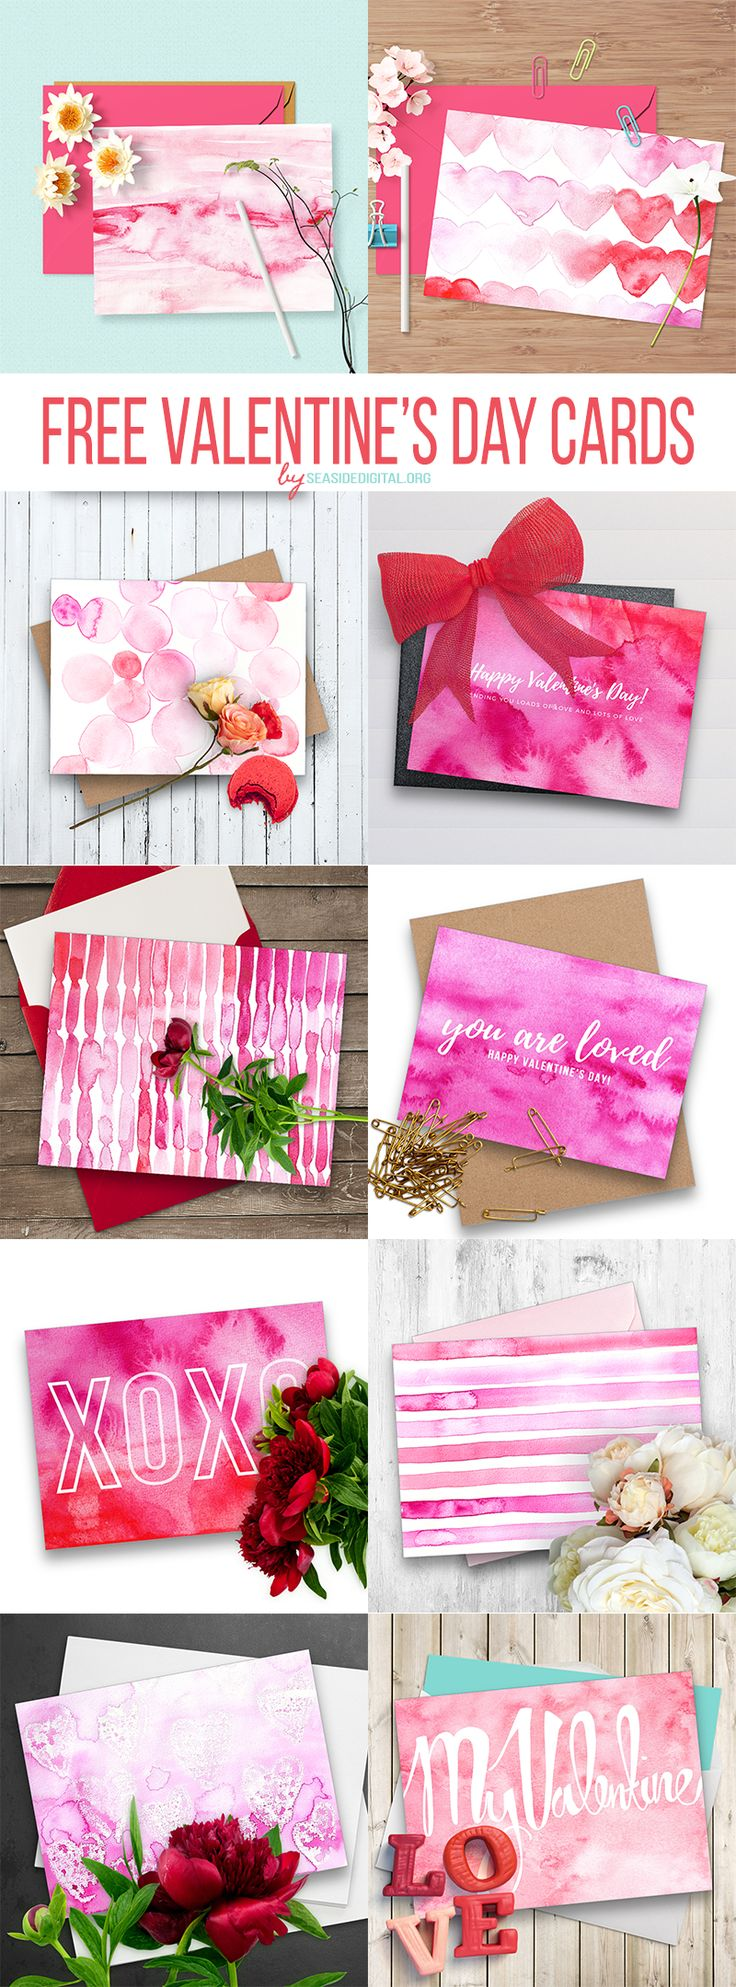 10 Free Watercolor Valentine's Day Cards